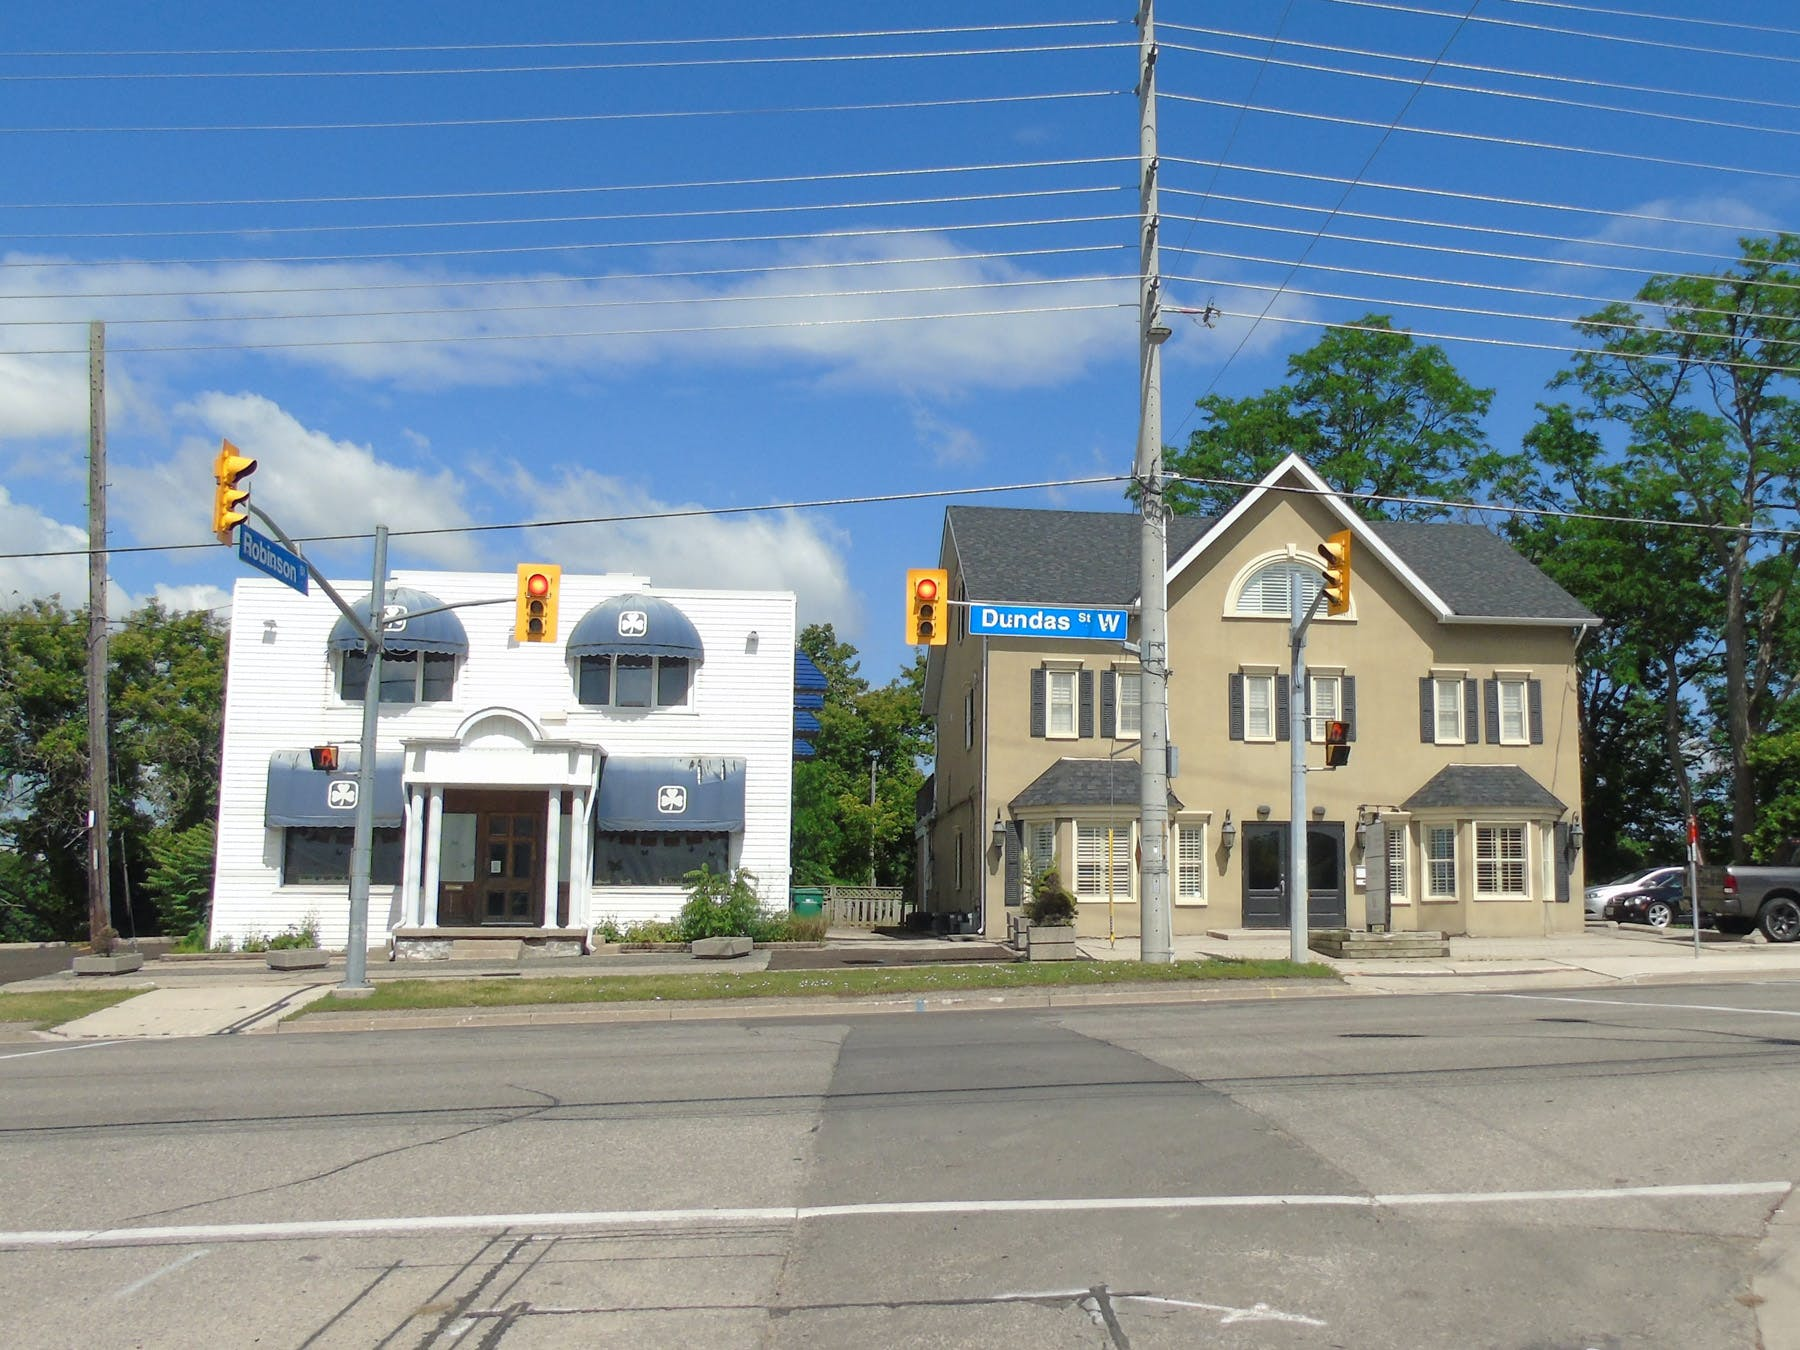 Dundas Street in Erindale Village